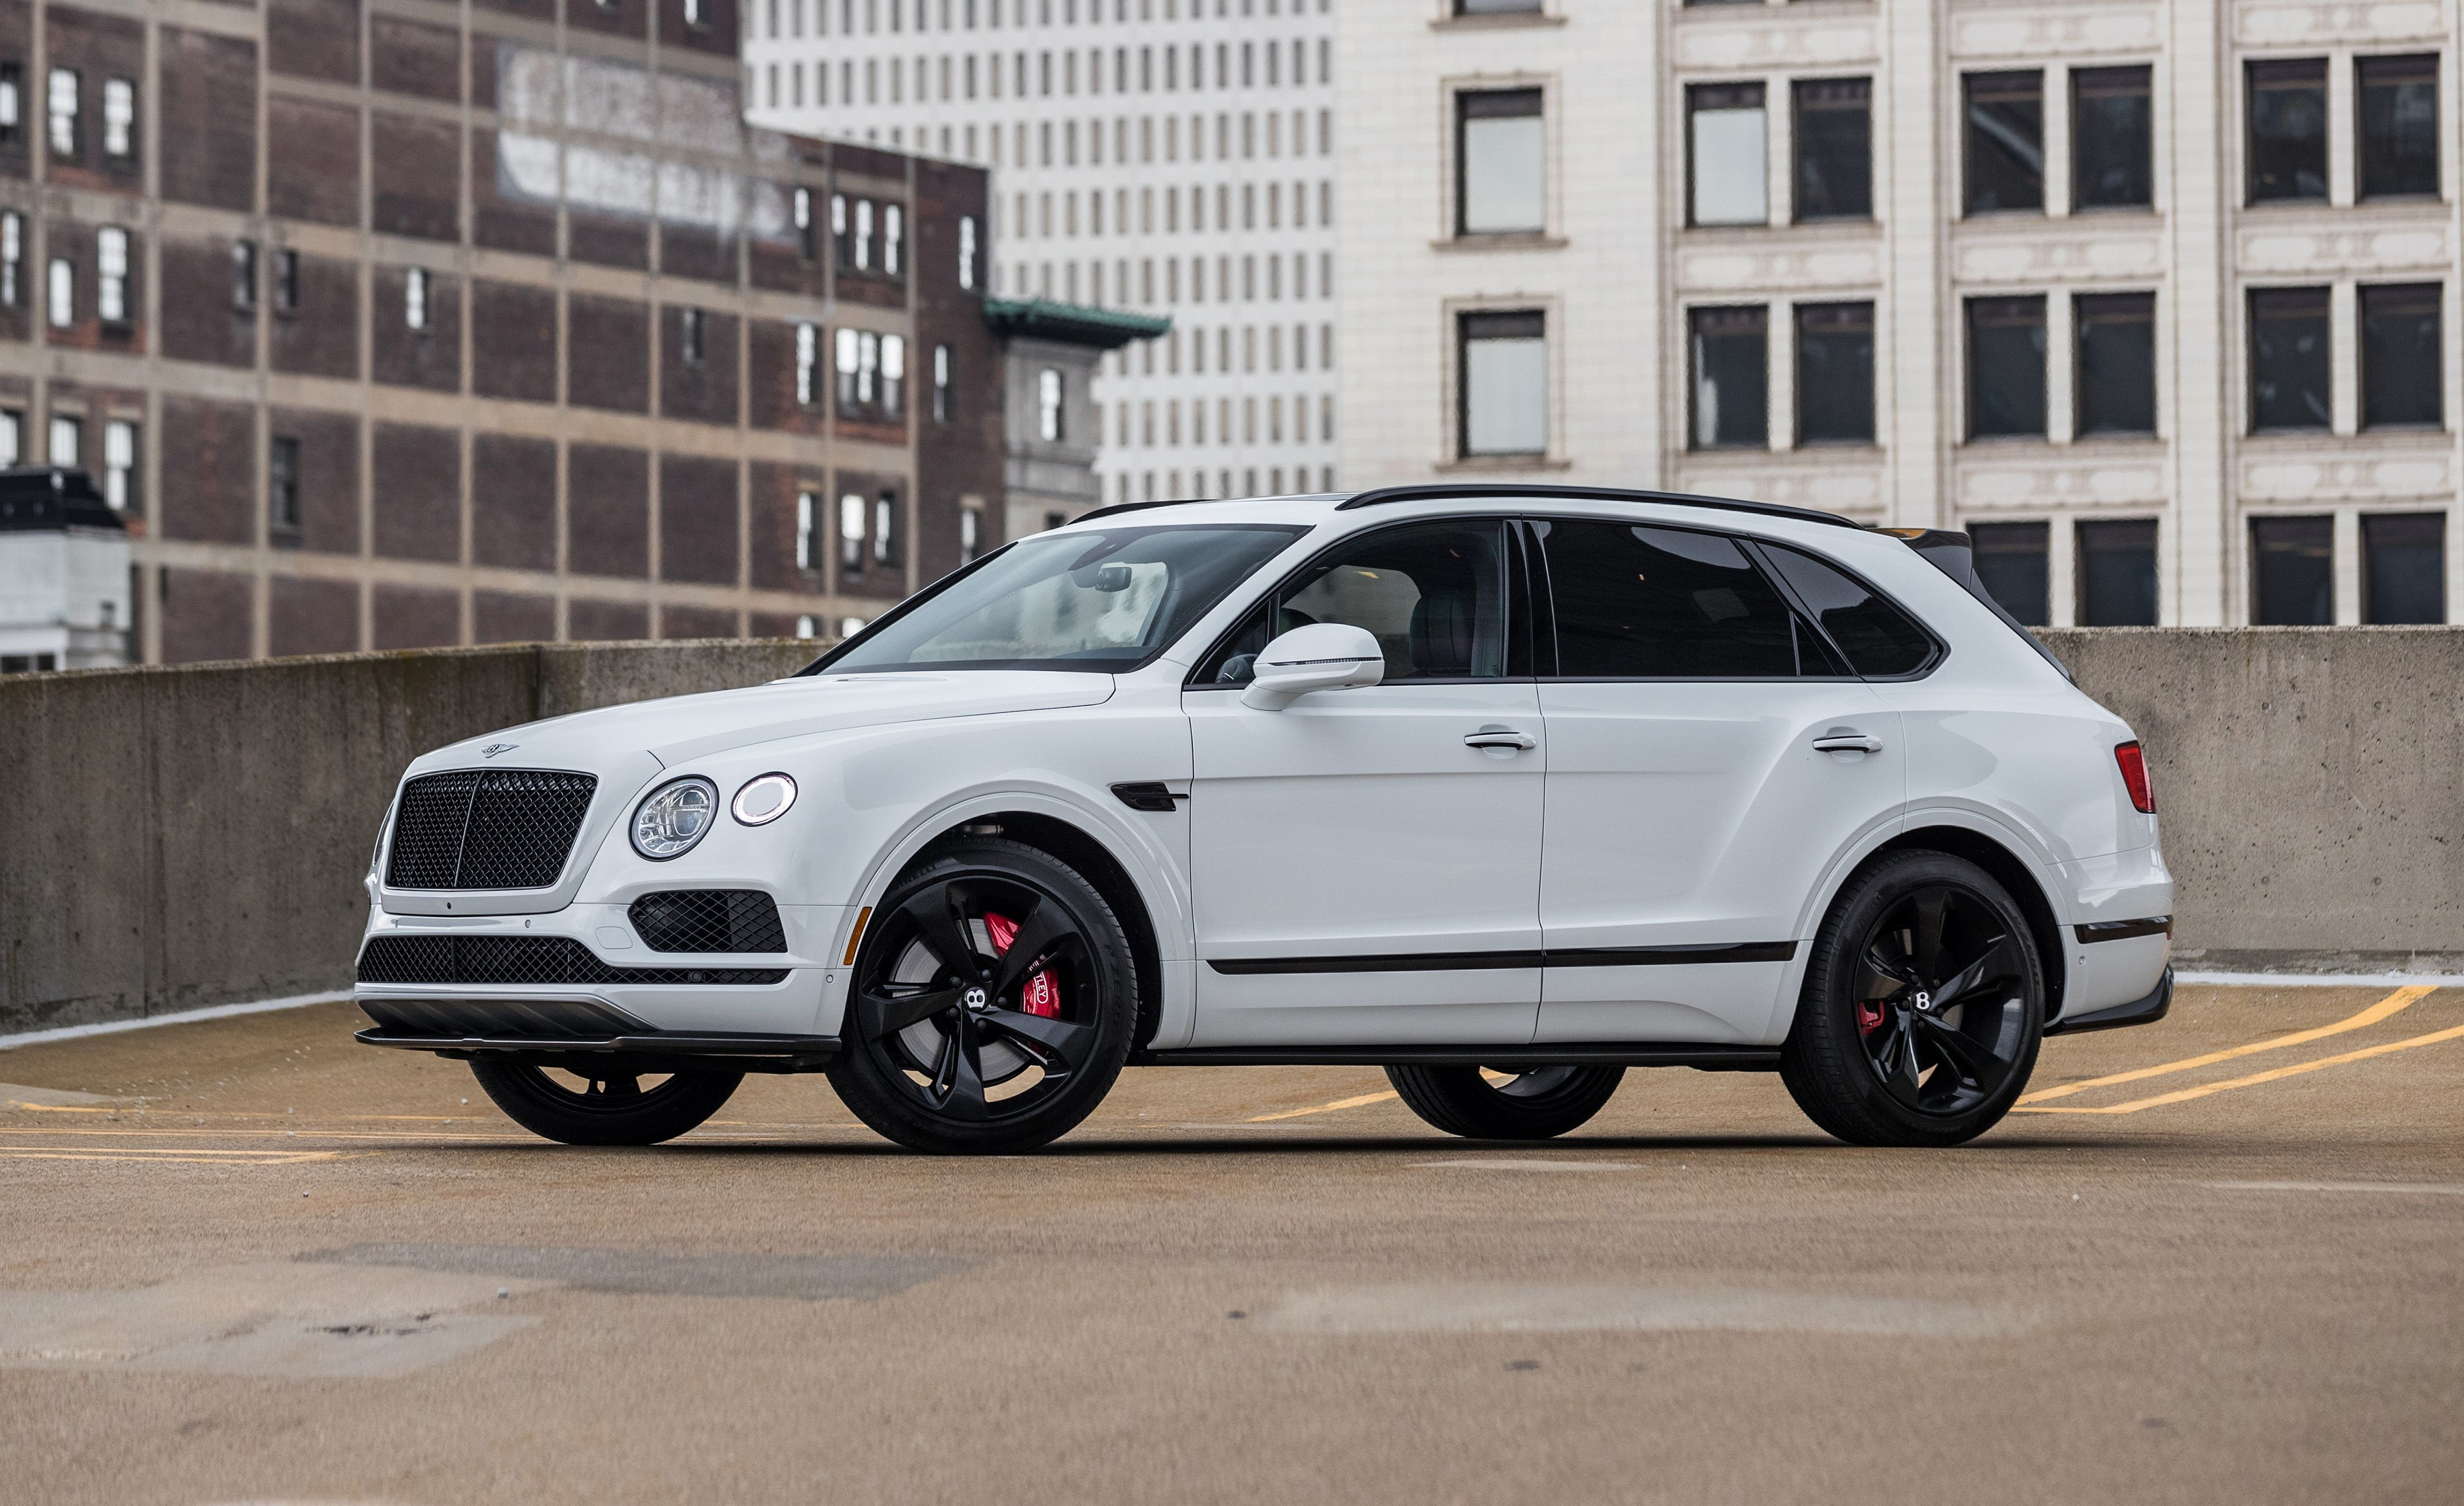 Bentley Bentayga (2016–present) Regardless of what you've heard, Bentayga is not a Swahili word that means cross-eyed cow, but the mistake, were you to make it, is understandable. Despite the Bentley Bentayga 's severe case of Strabismus, known more commonly as misaligned or crossed eyes, it has become is maker's best-selling model.